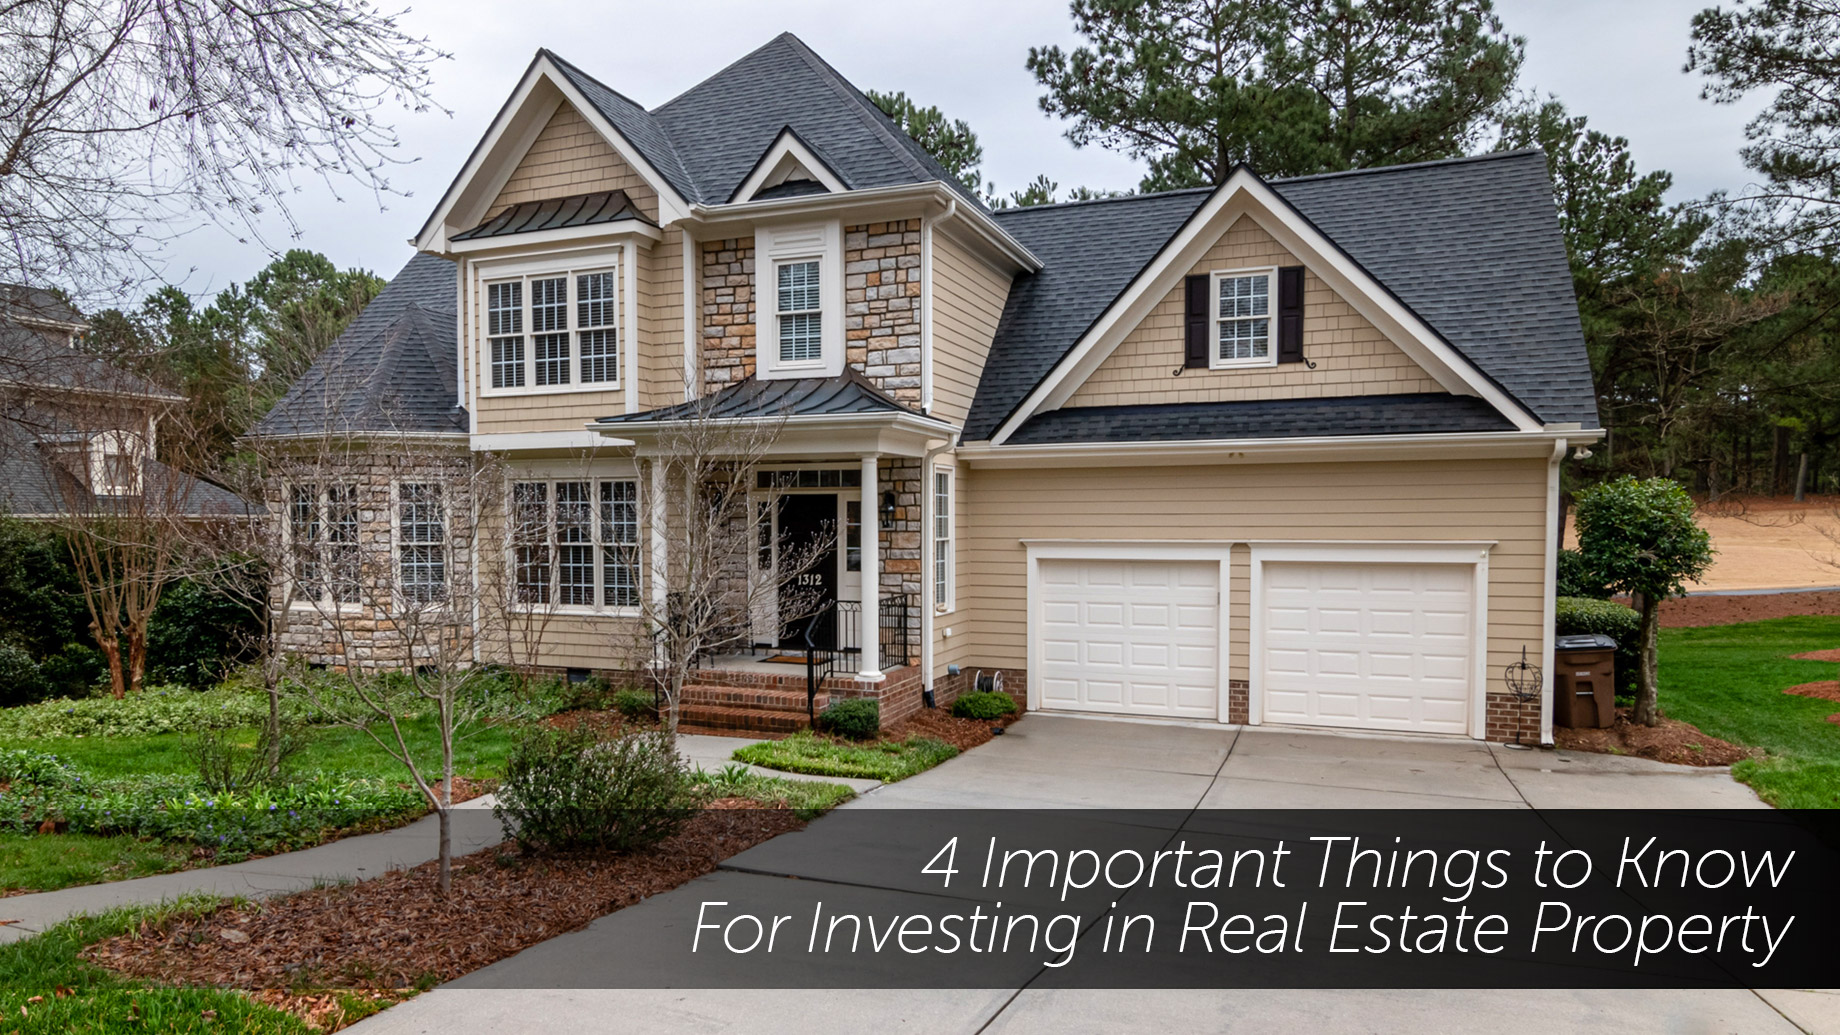 4 Important Things to Know For Investing in Real Estate Property